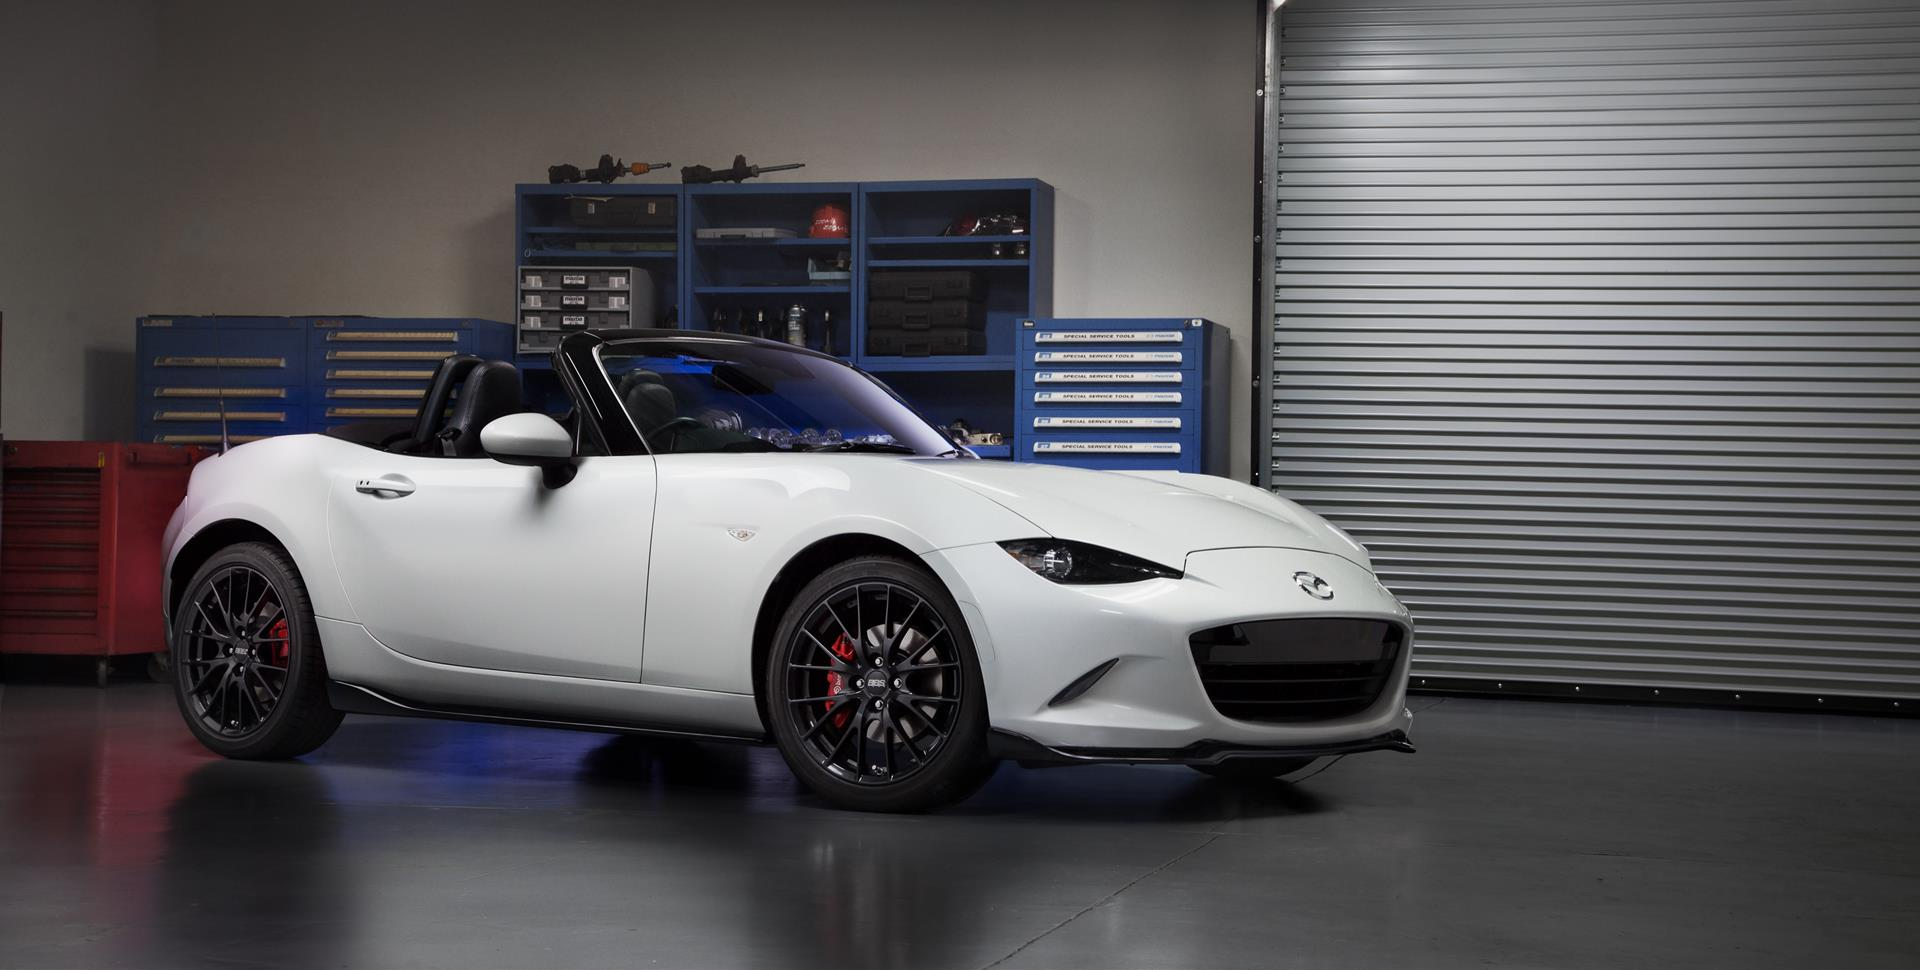 2016 Mazda MX-5 Accessories Design Concept News and Information